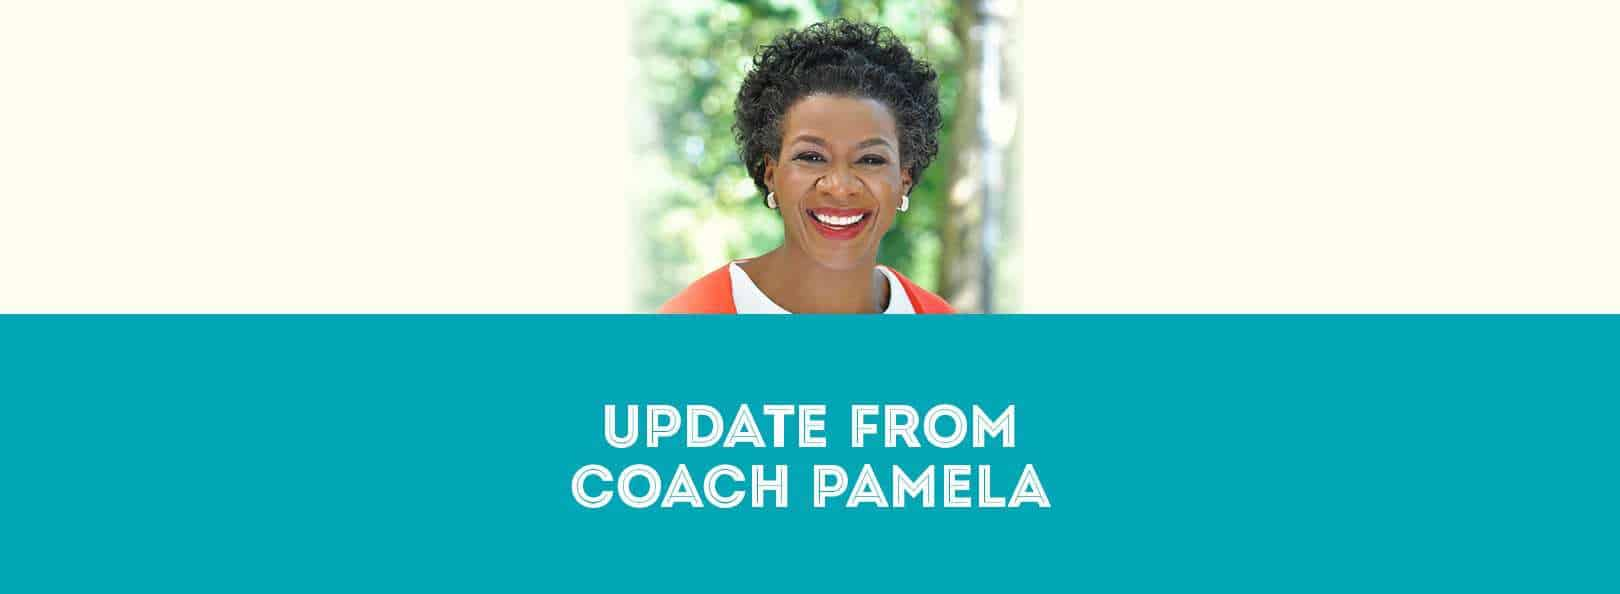 Update from Coach Pamela